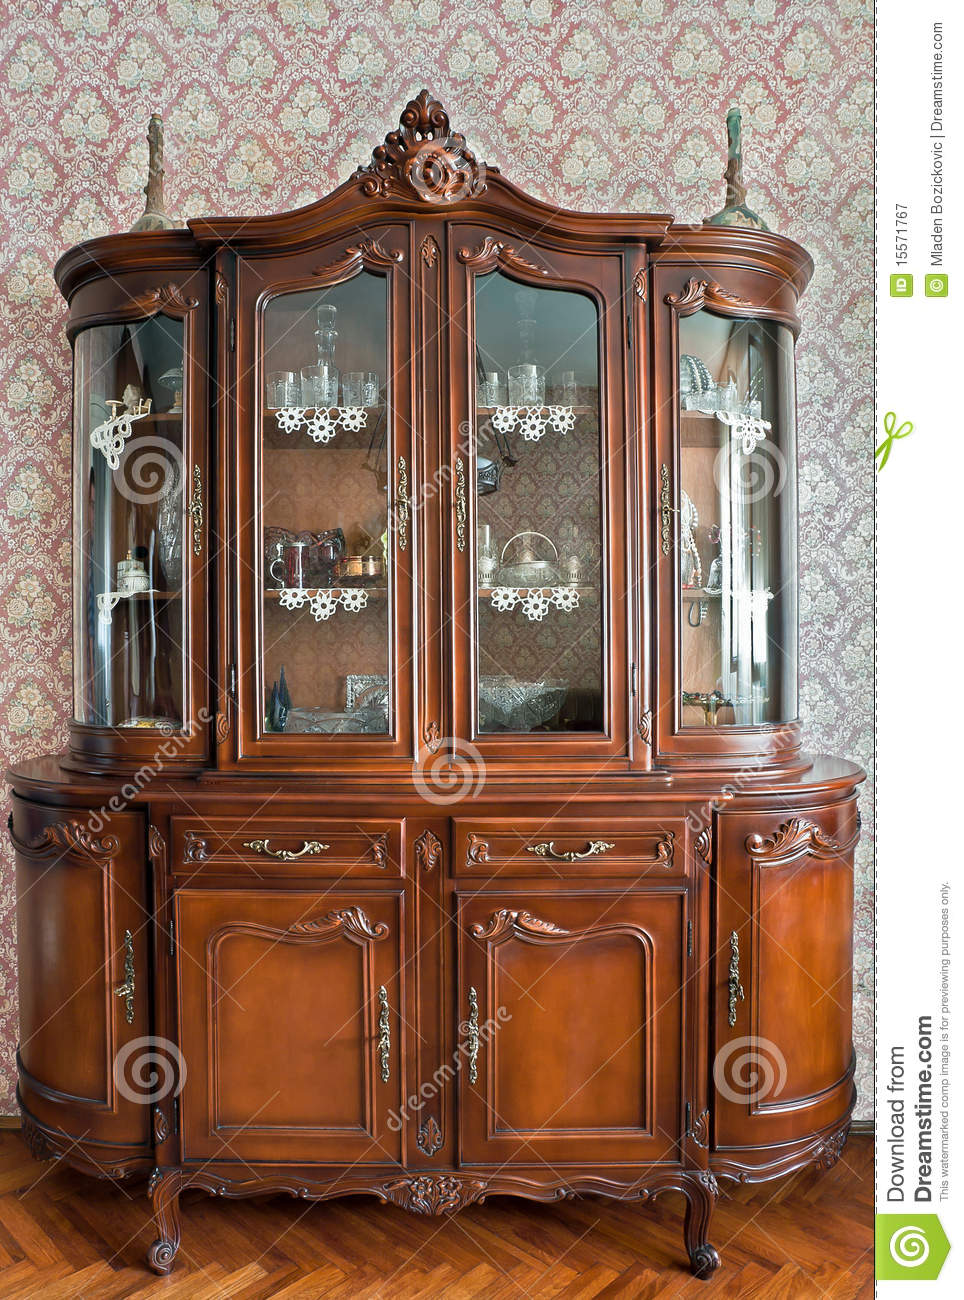 Antique Showcase Royalty Free Stock Photography Image